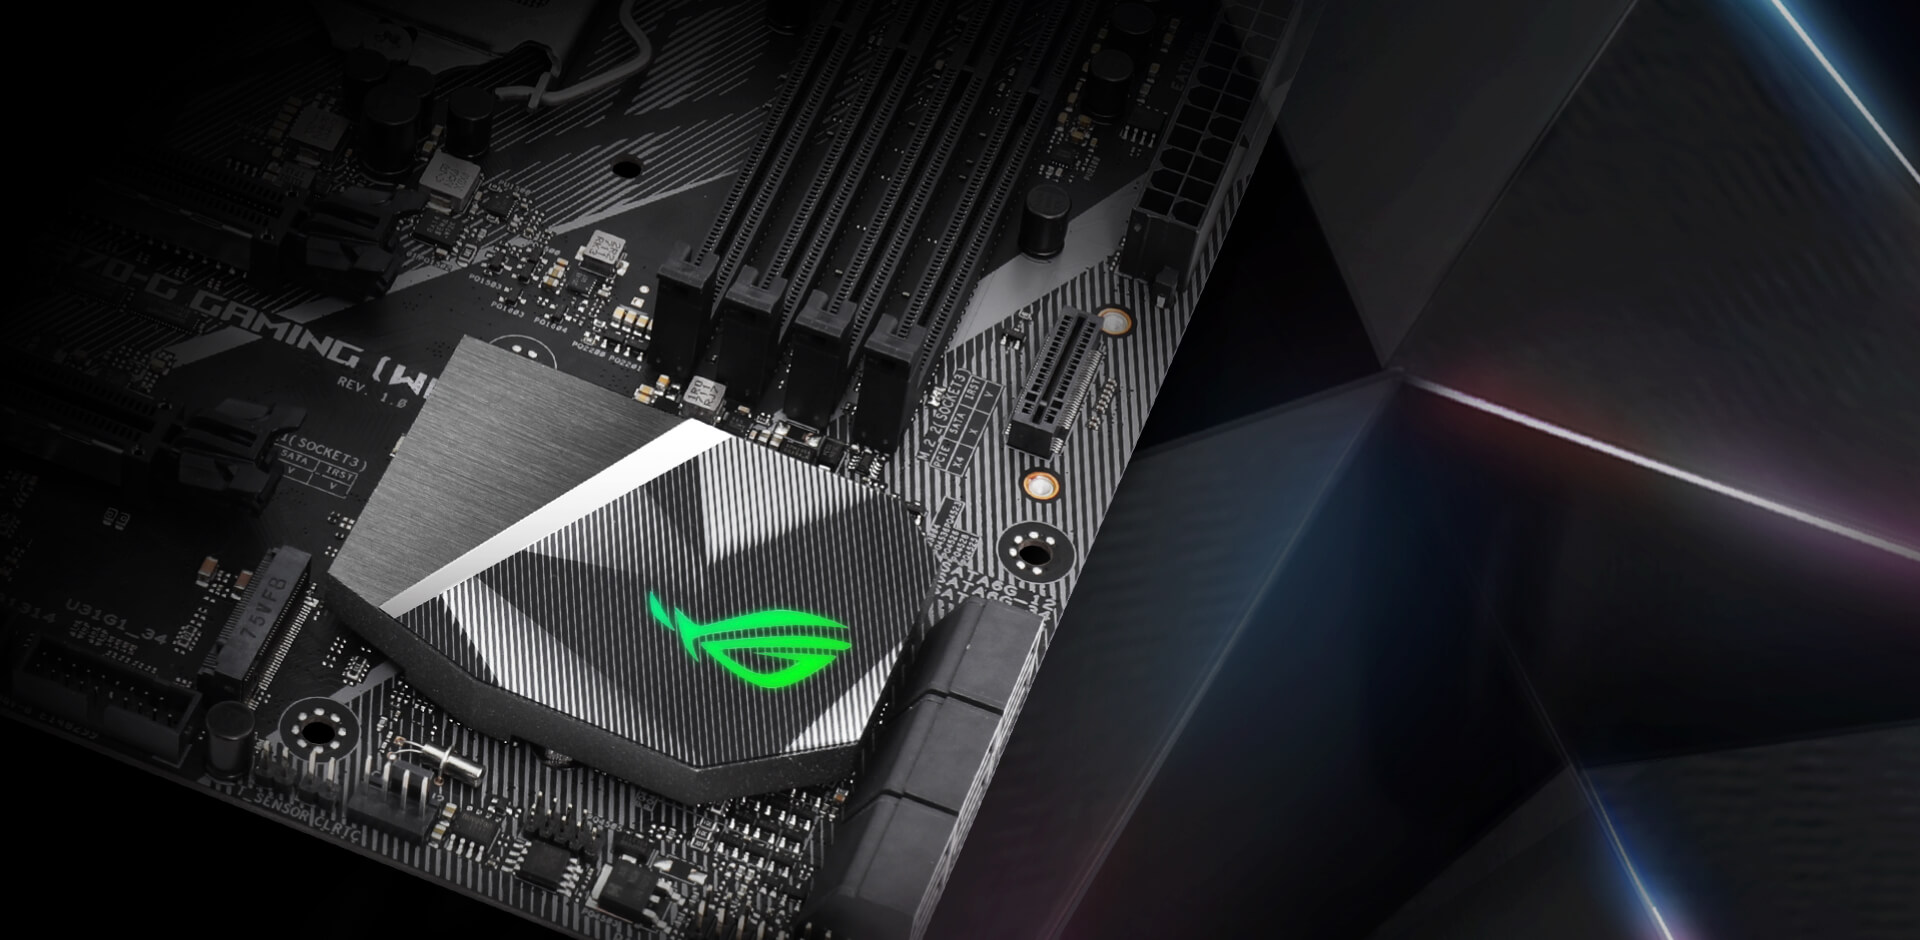 Rog Strix Z370 G Gaming Wi Fi Ac Motherboards Asus Usa 8 Pin Temperature Controller Wiring Diagram Badge Our All Seeing Eye Is Cast In Brushed Metal For Tactile Style That Makes Your Rig Shine